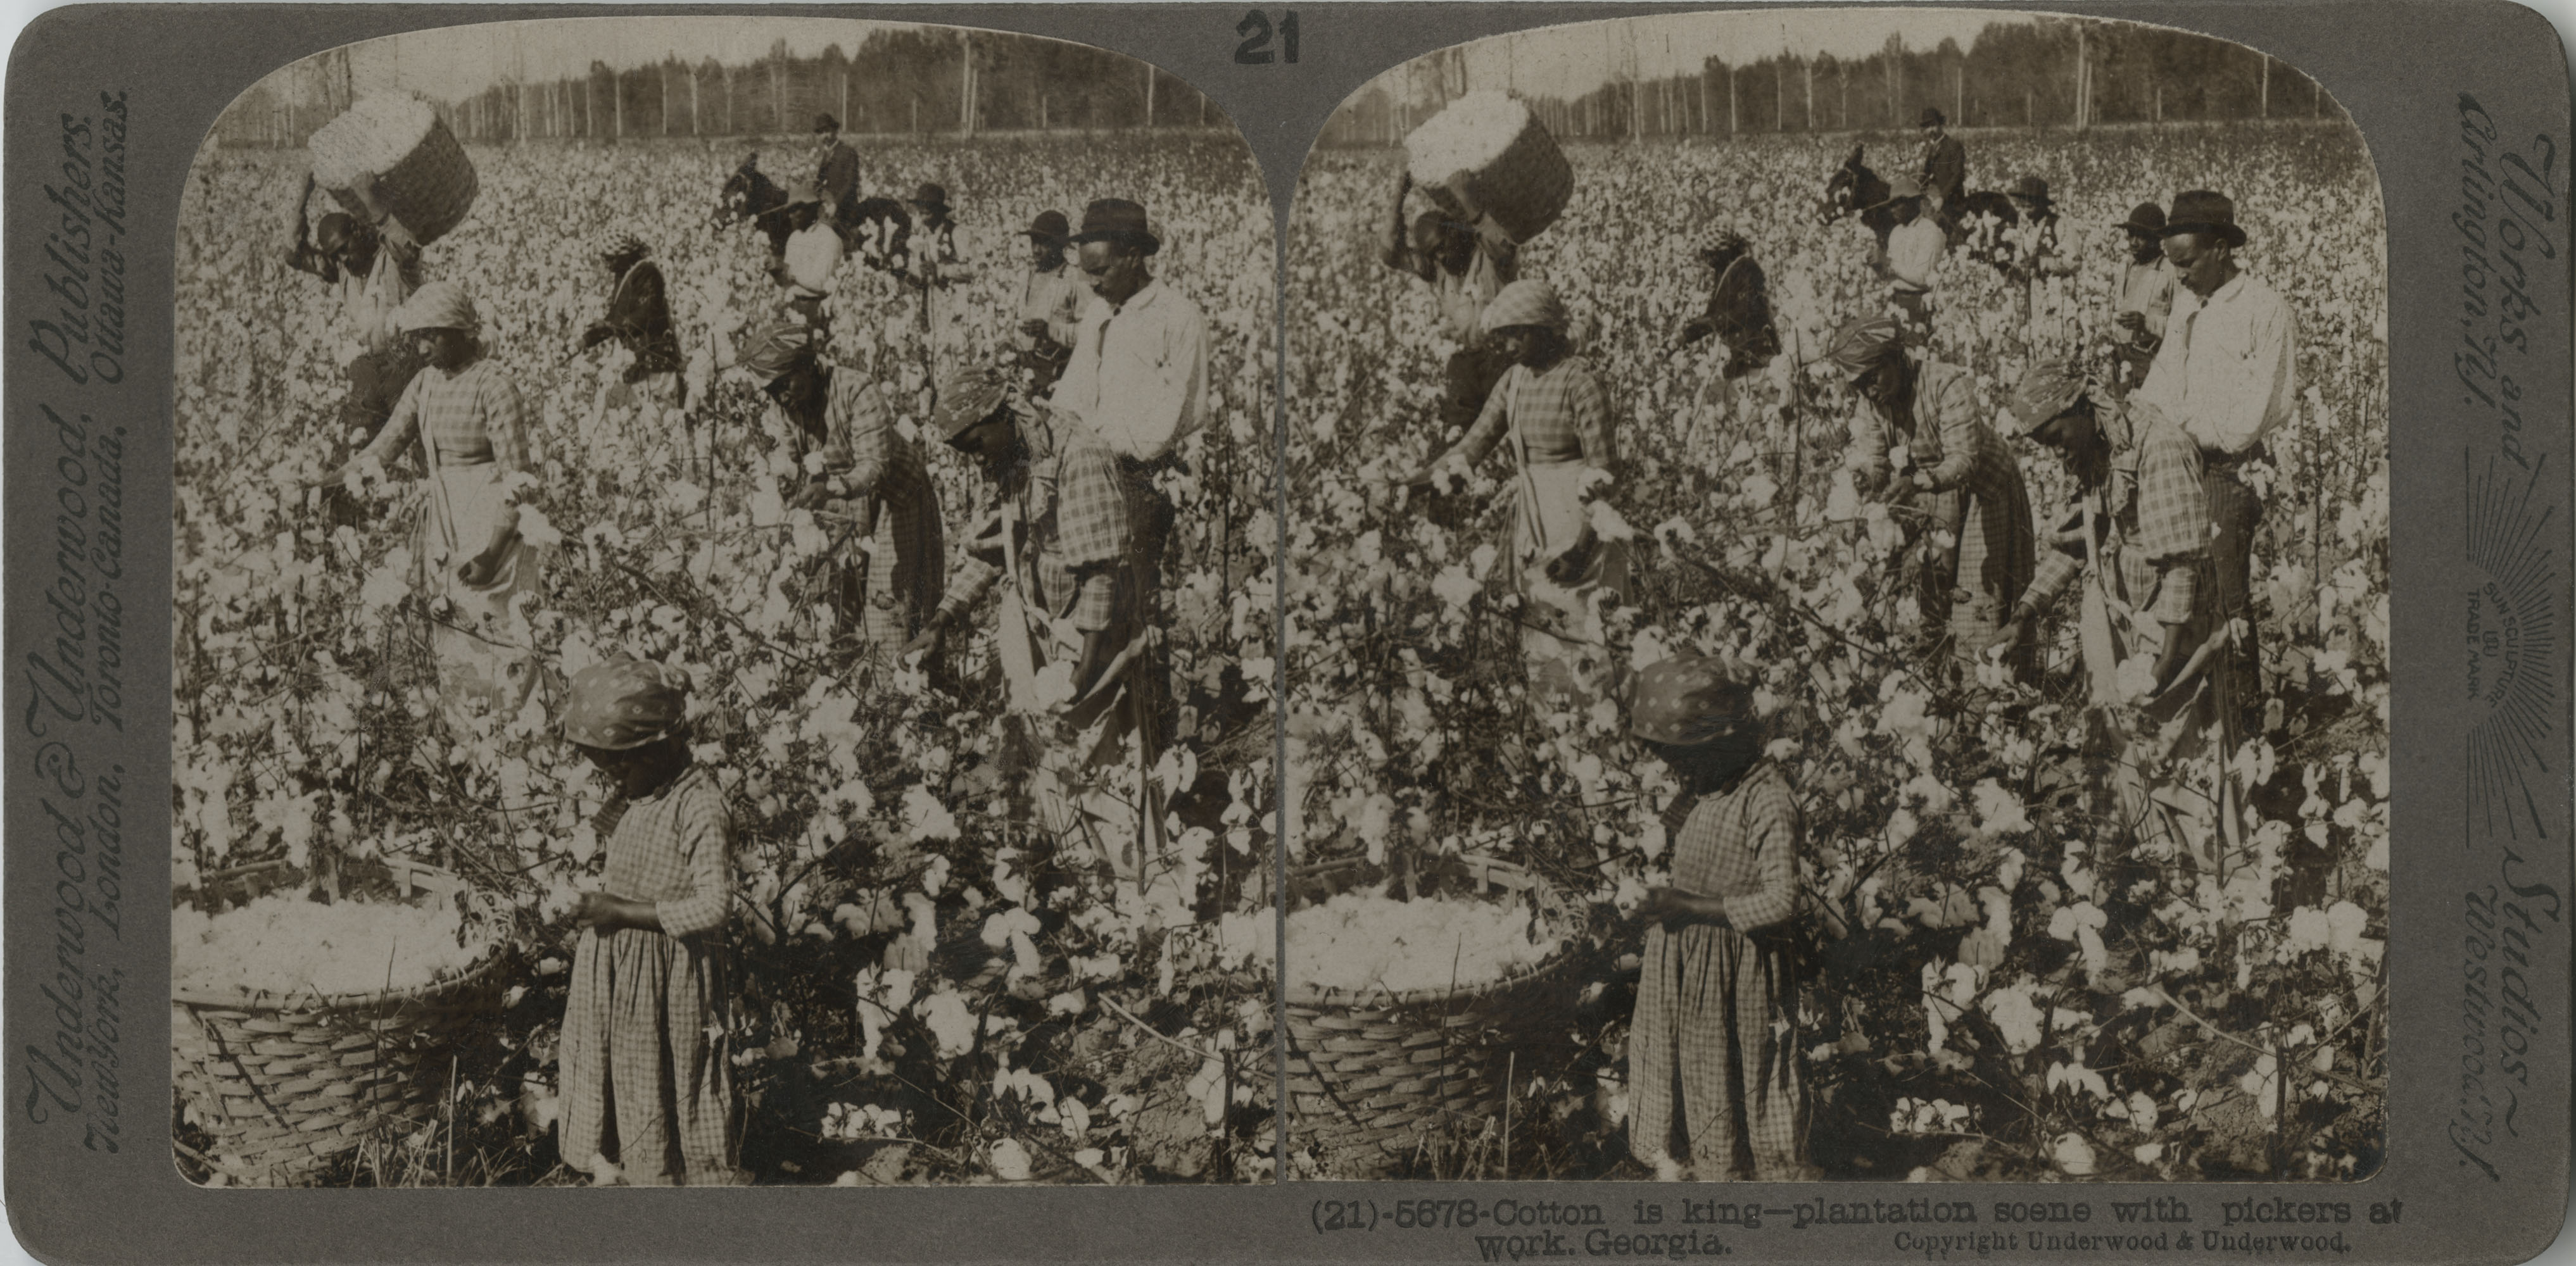 Cotton is king: Plantation Scene with Pickers at Work, Georgia